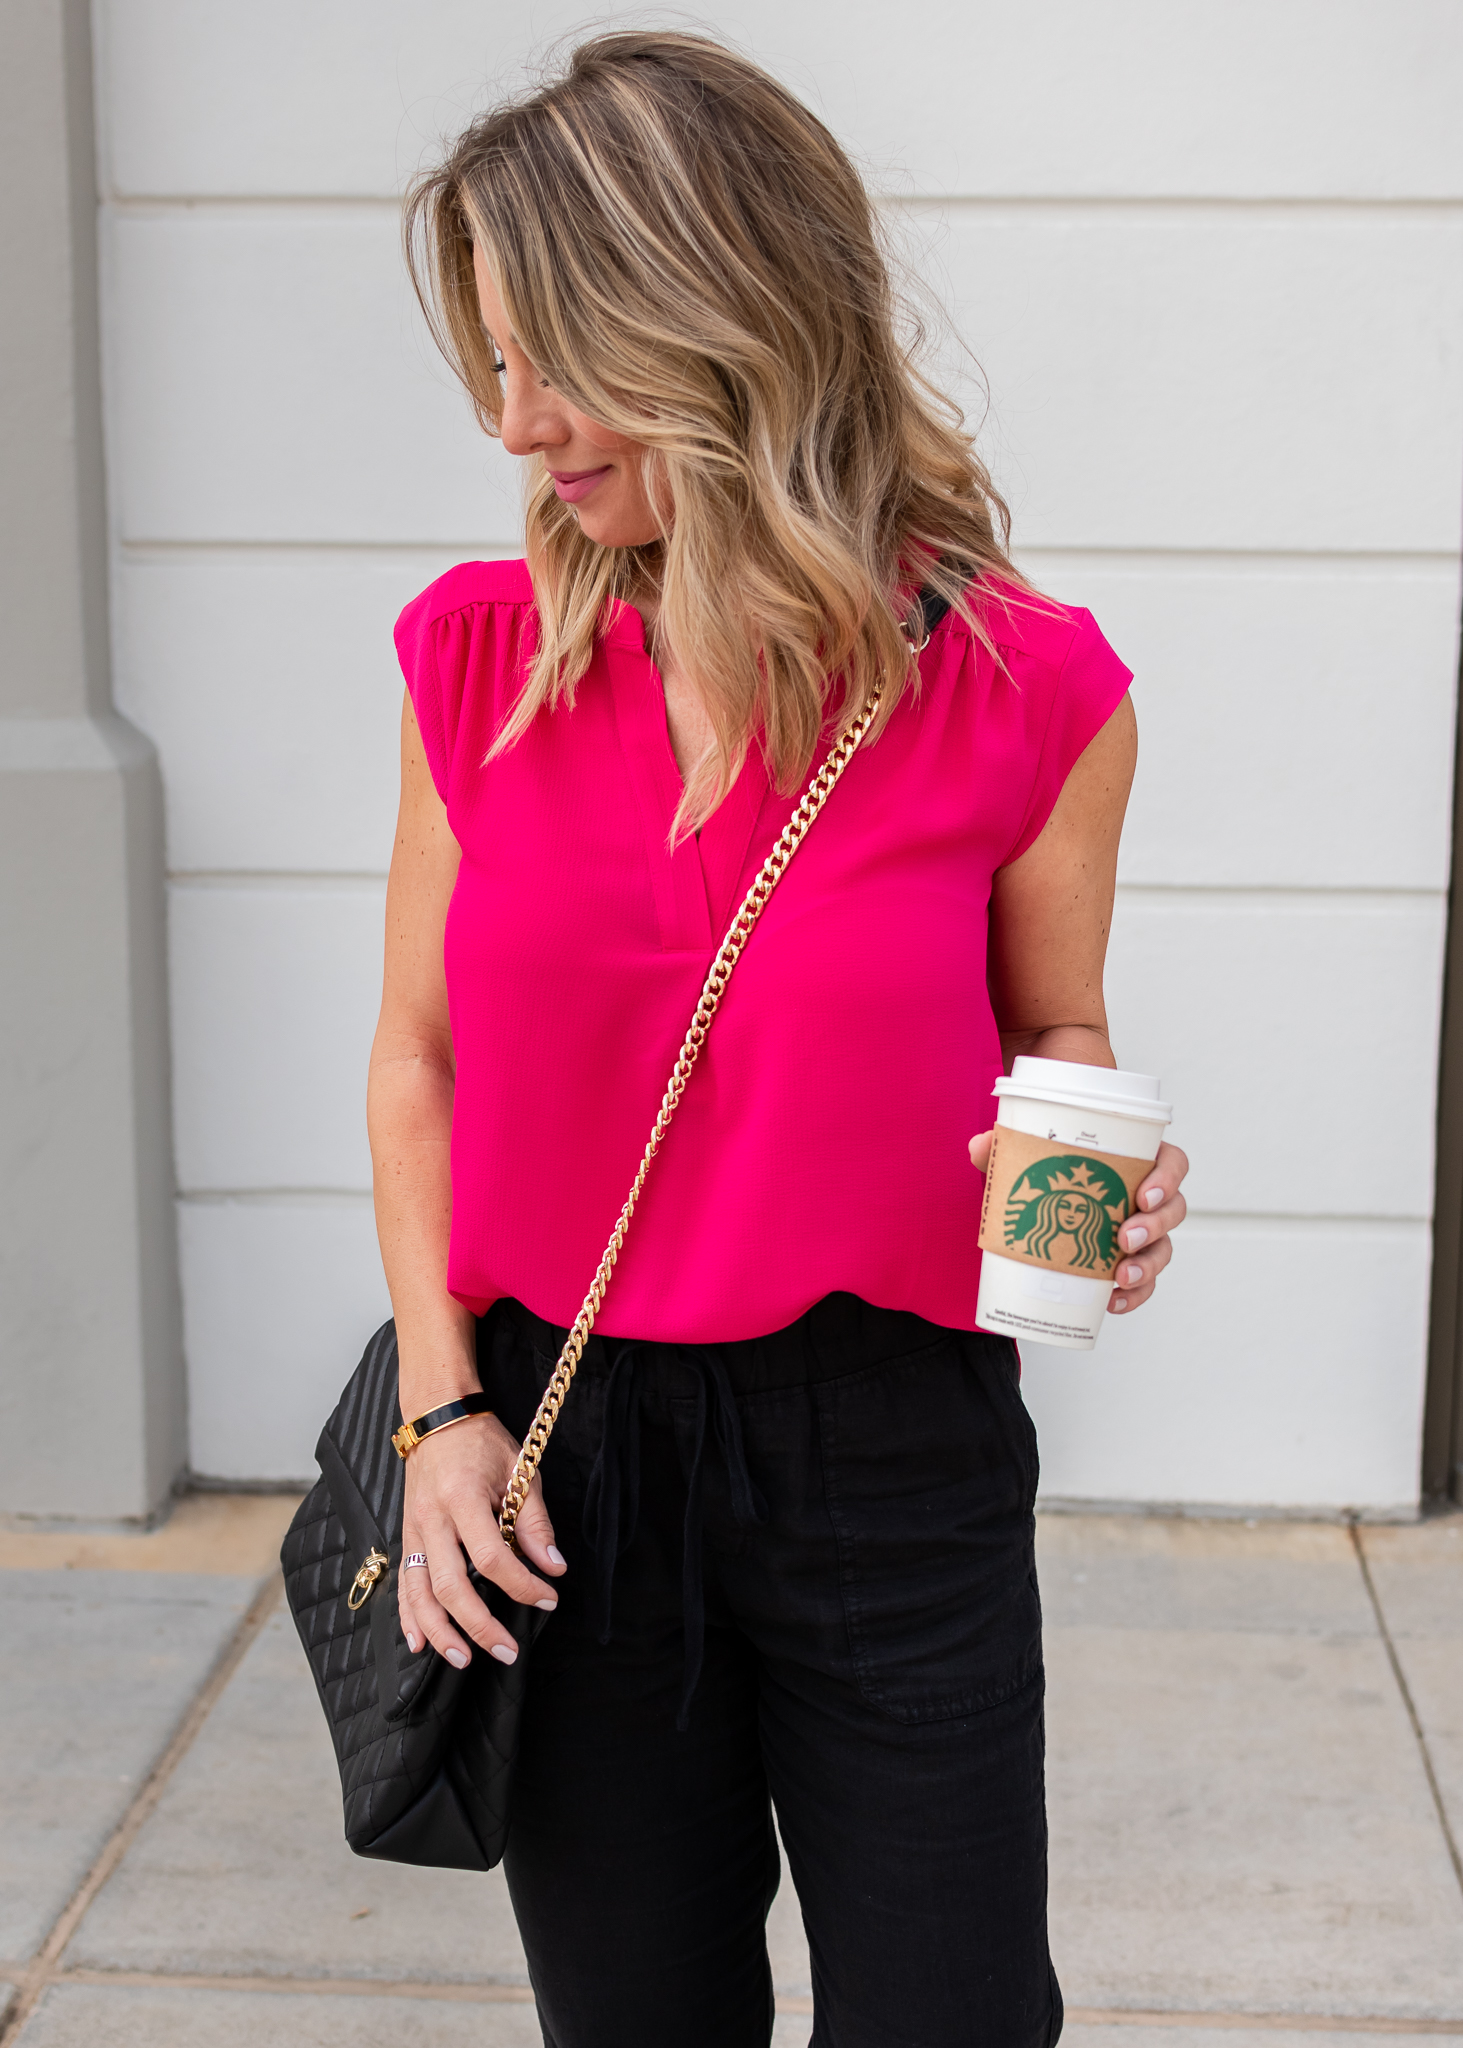 Pink top and black joggers